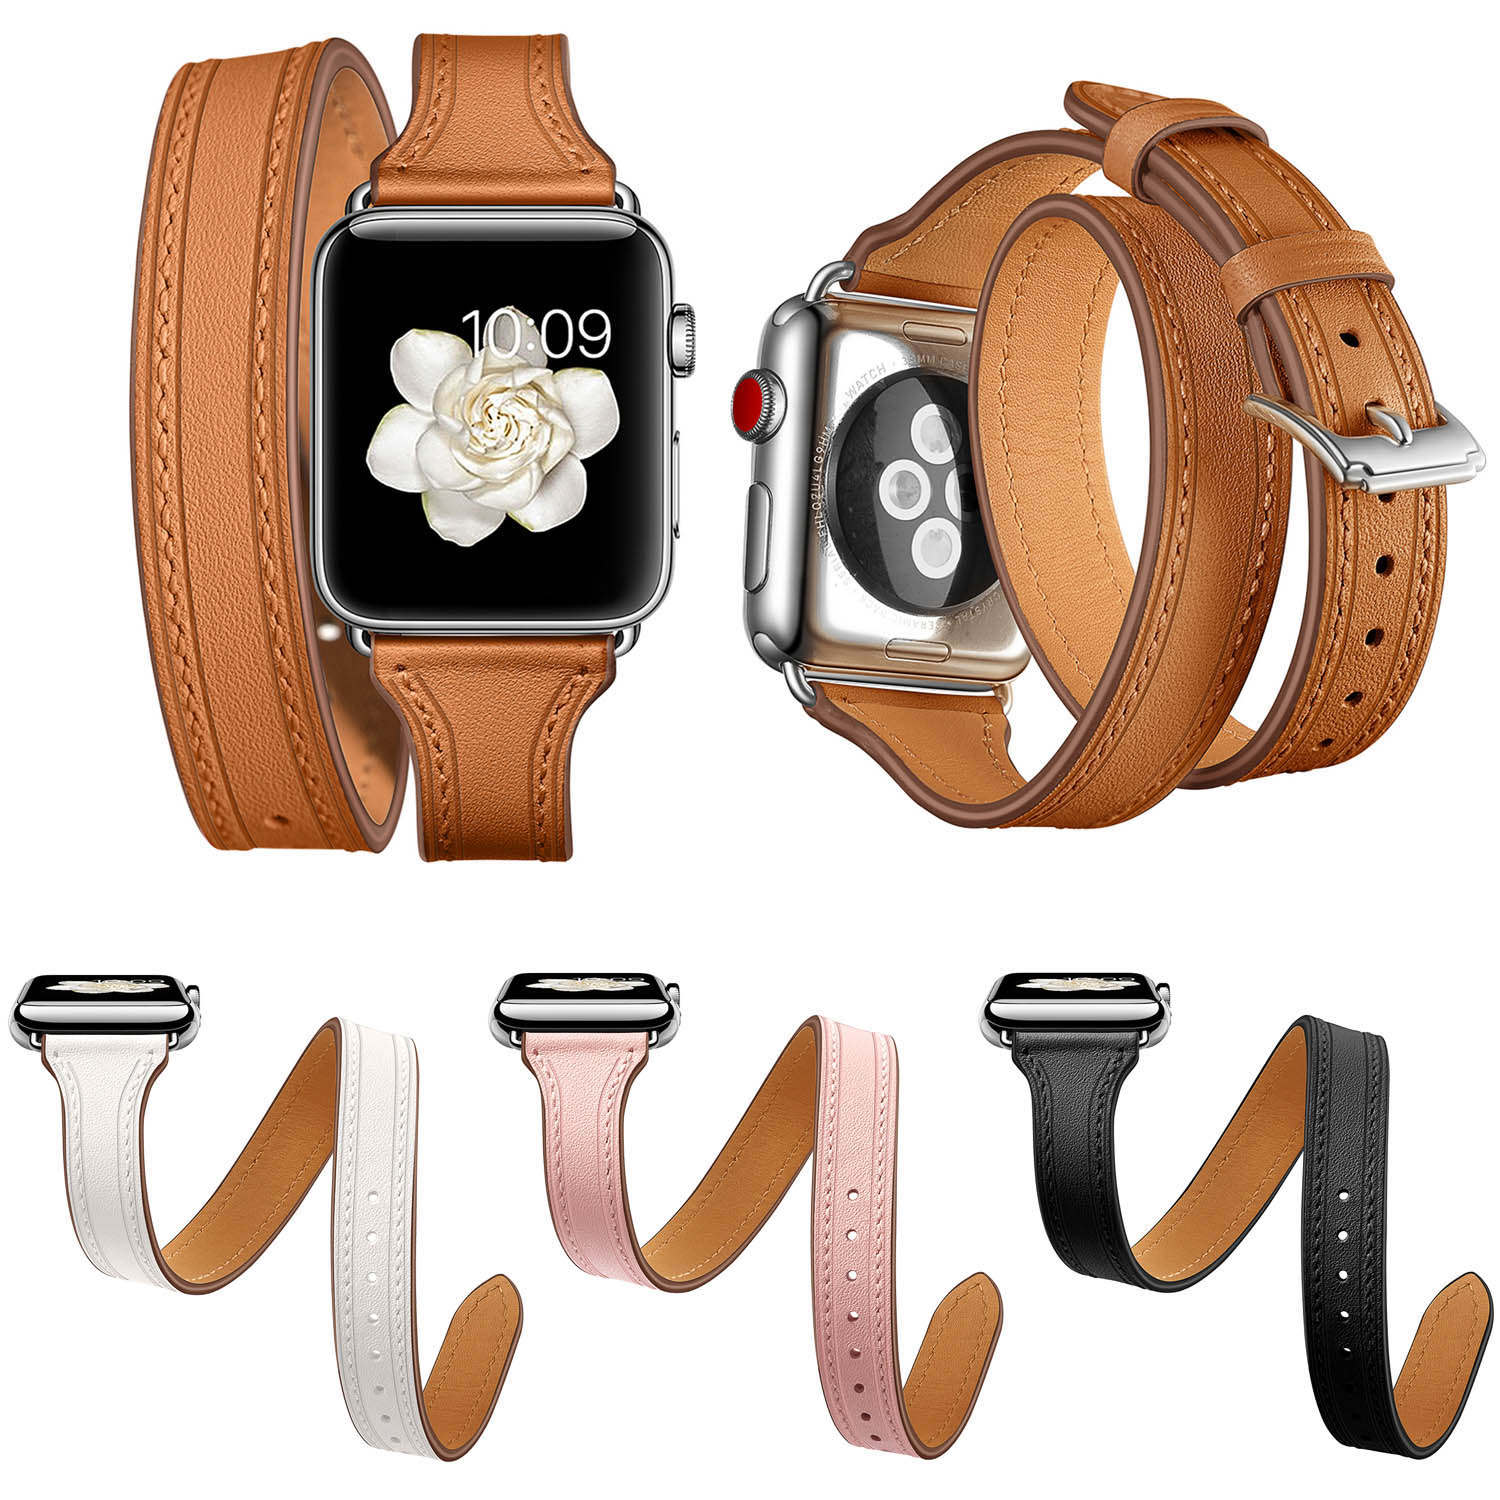 Sporting Long Soft Leather Band For Apple Watch Iwatch Series 4 3 2 1 40mm 44mm 38mm 42mm Double Tour Bracelet Strap For Smart Watch Up-To-Date Styling Back To Search Resultswatches Watchbands